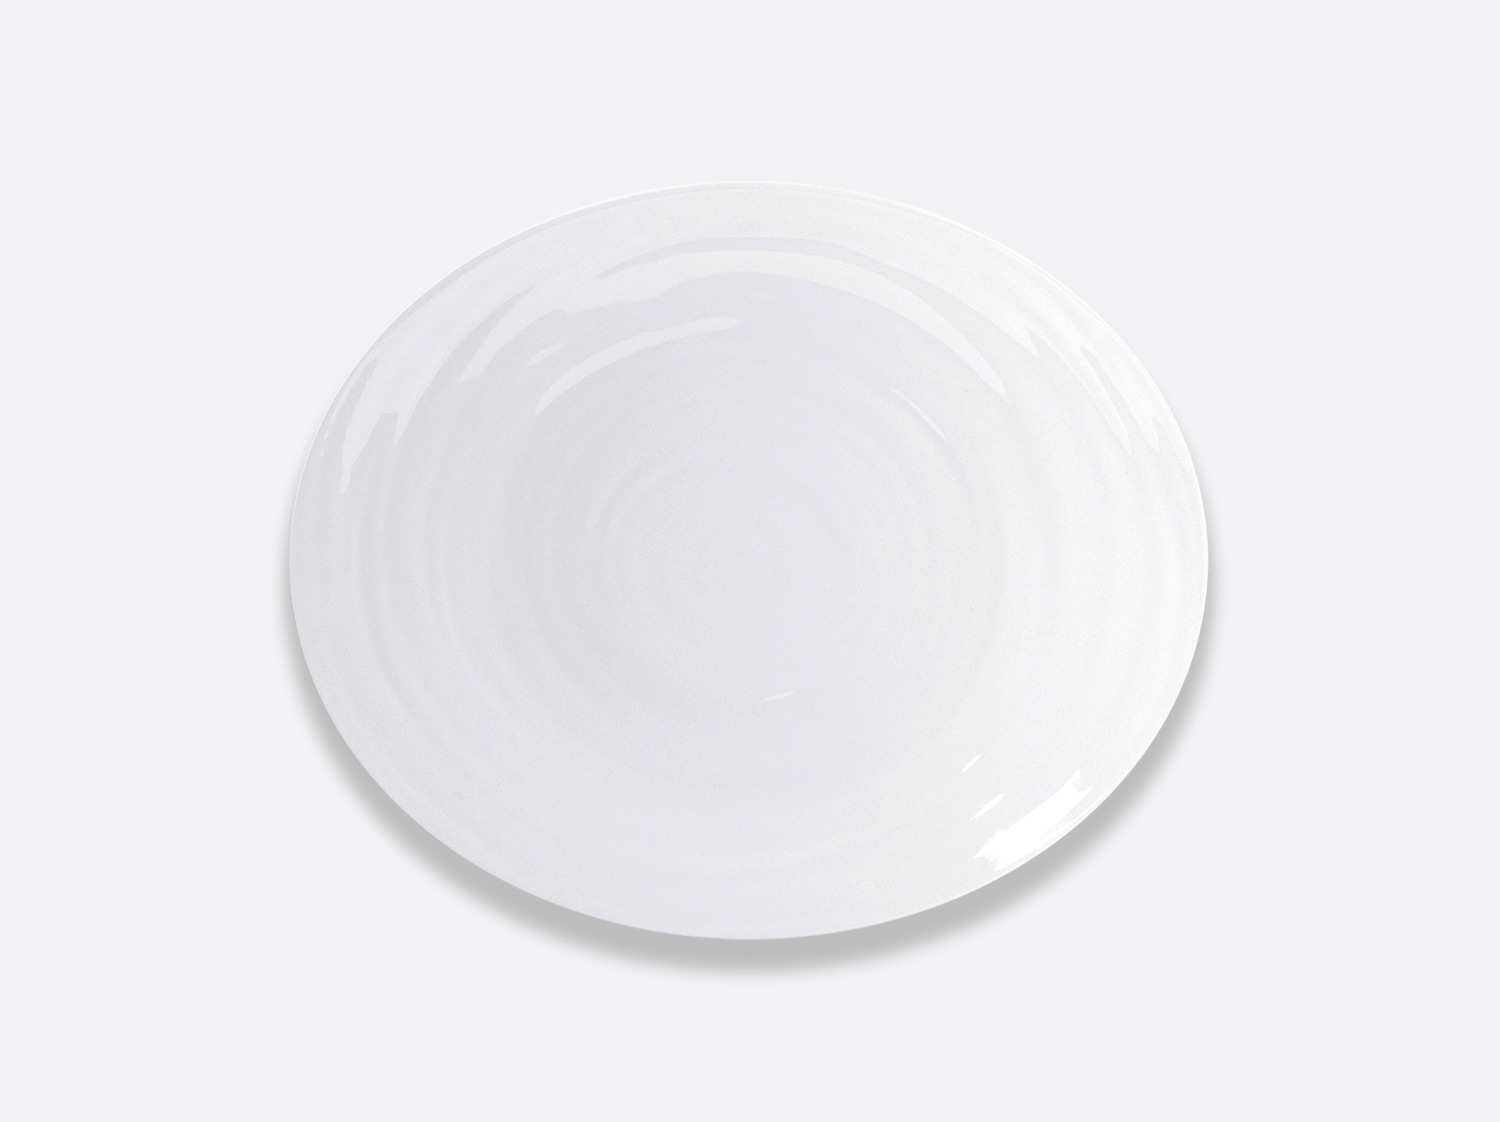 Assiette ovale 33 cm en porcelaine de la collection Origine Bernardaud